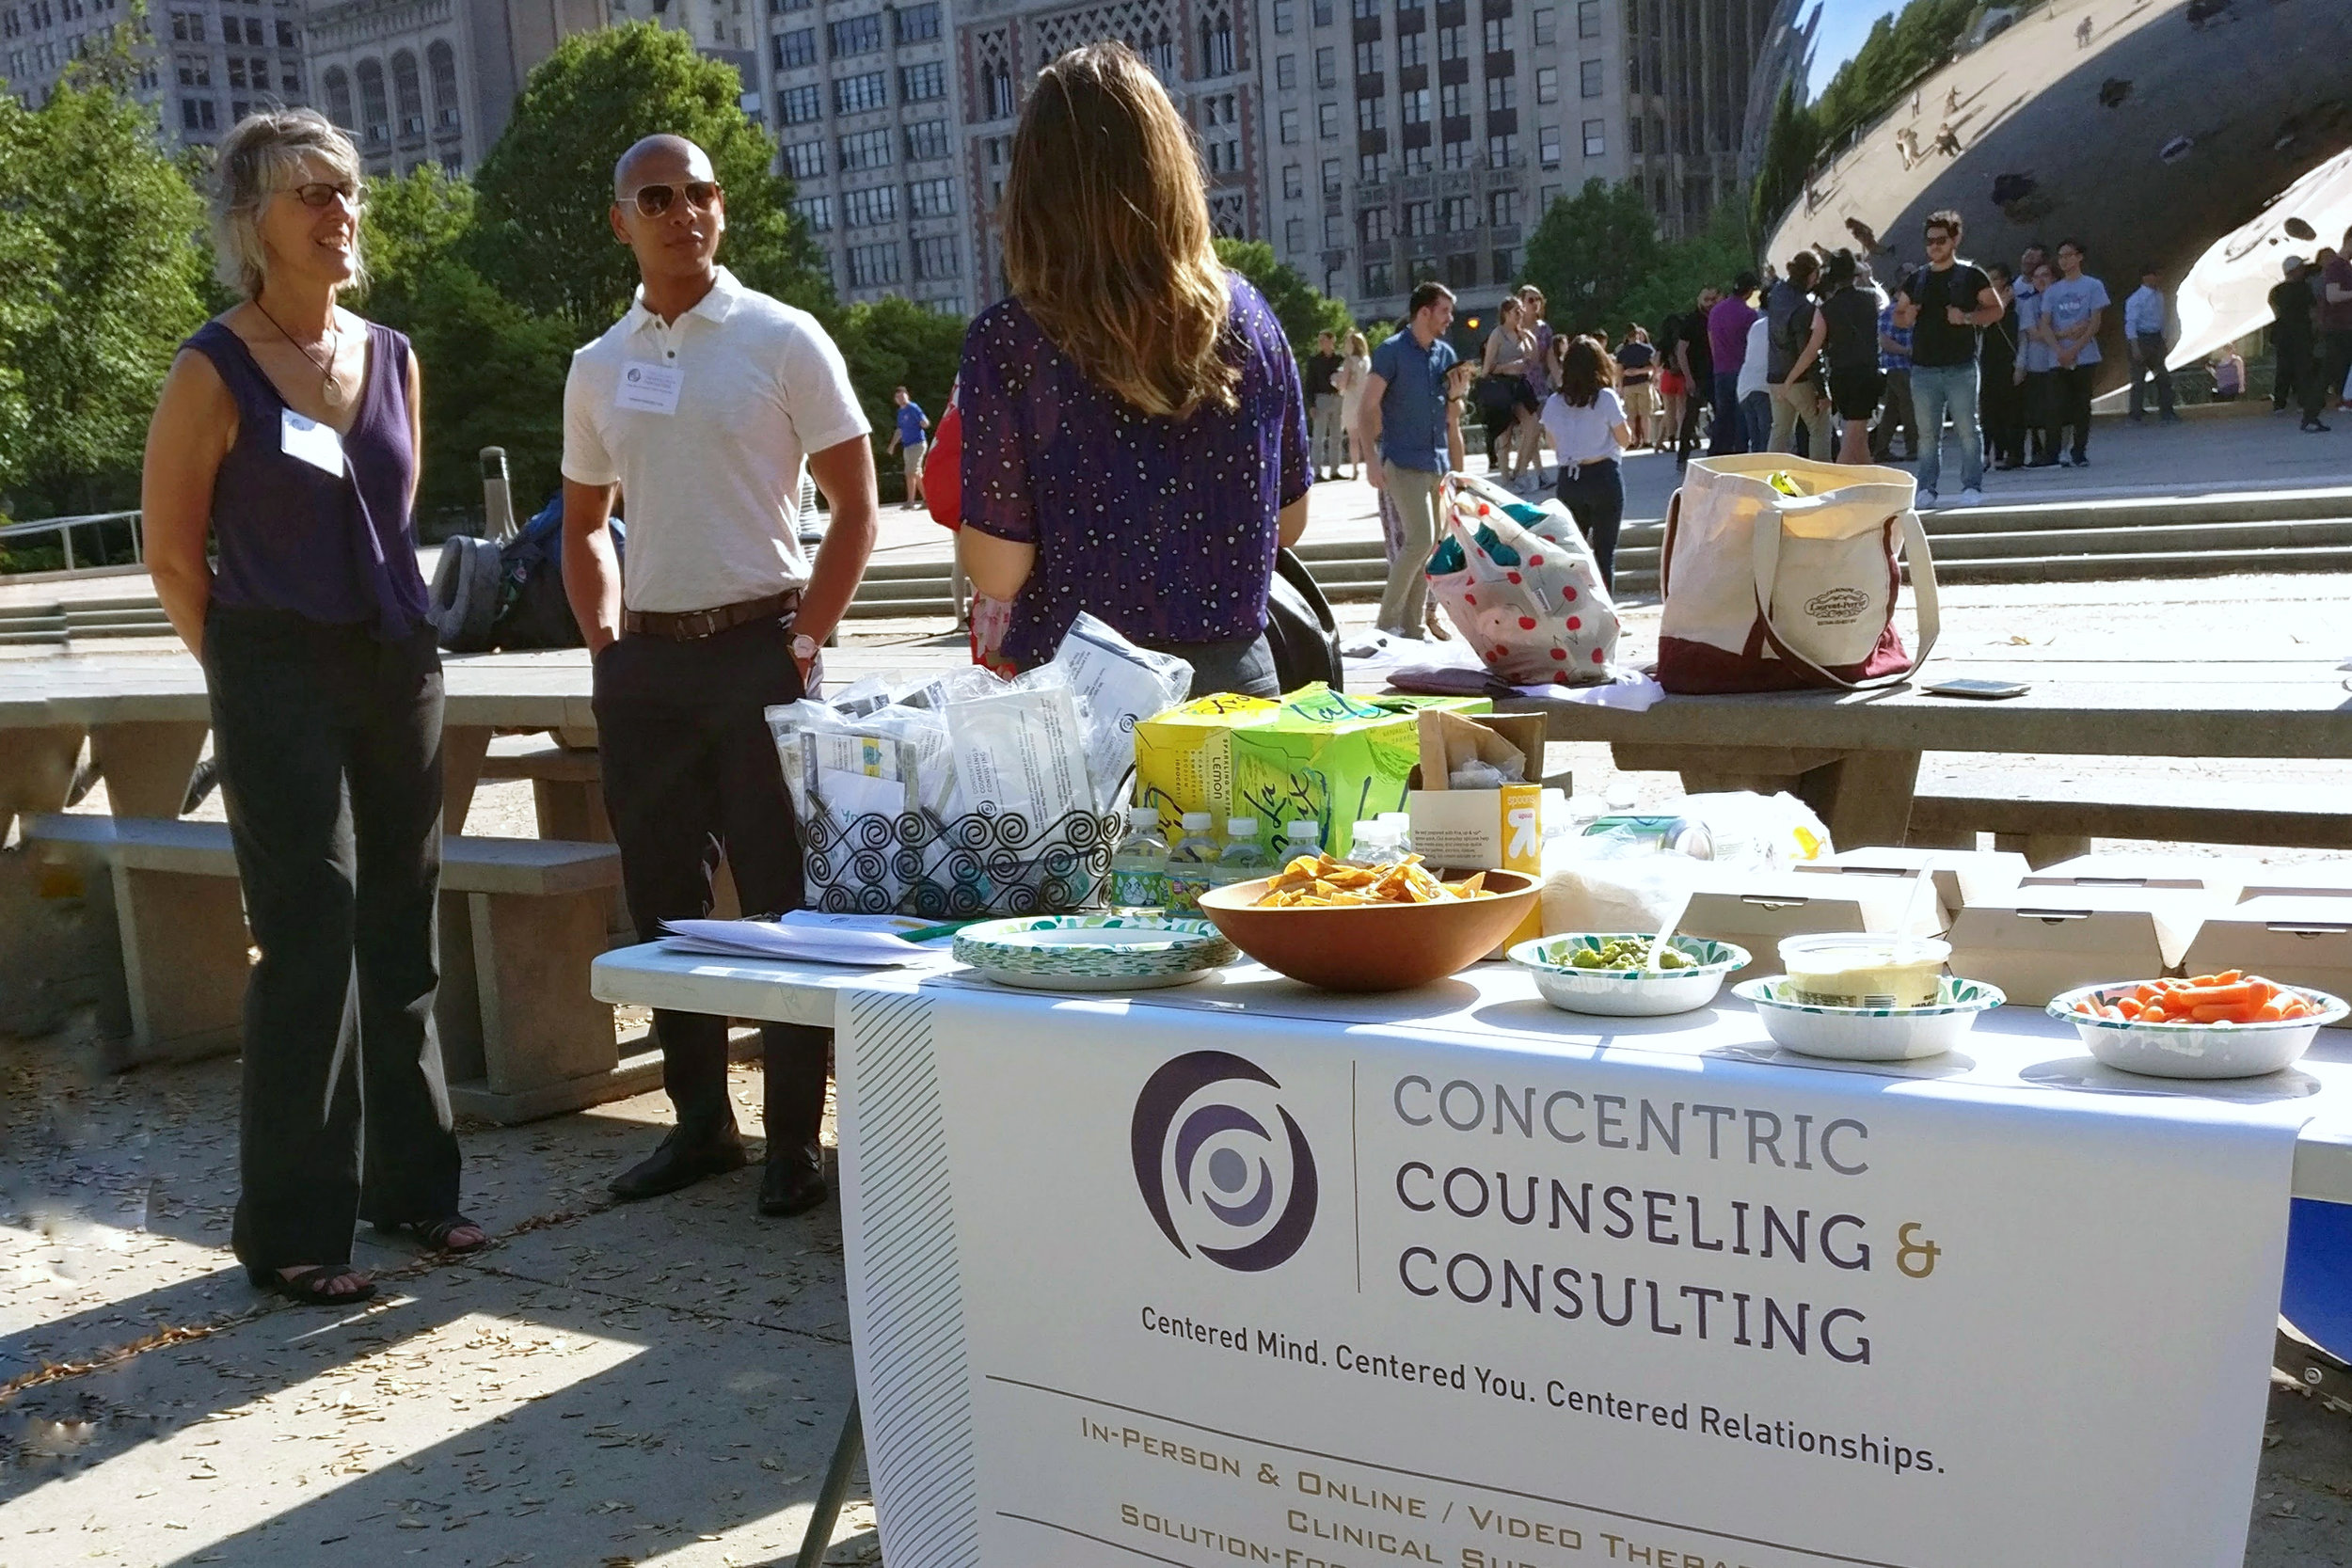 Concentric Counseling & Consulting Therapists On The Table Millennium Park Chicago